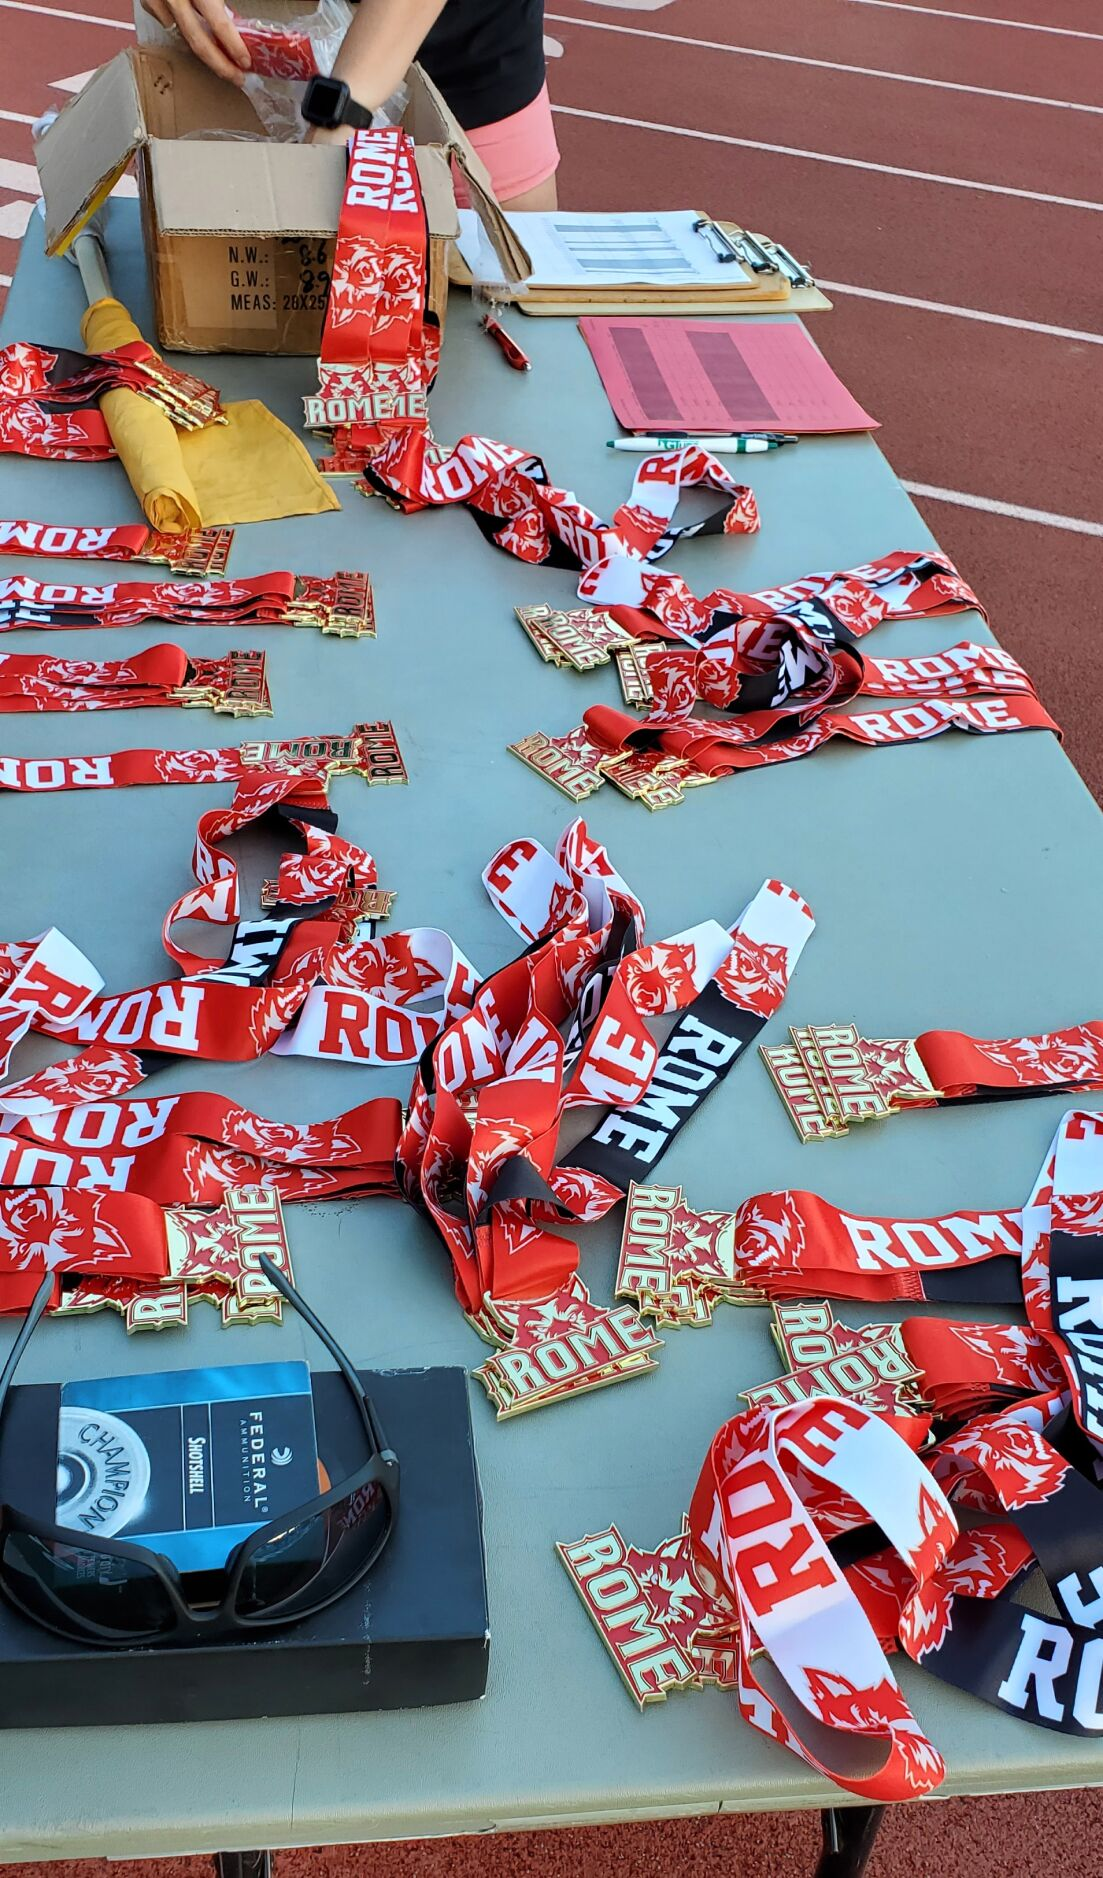 Rome City Schools Youth Track and Field Camp Awards